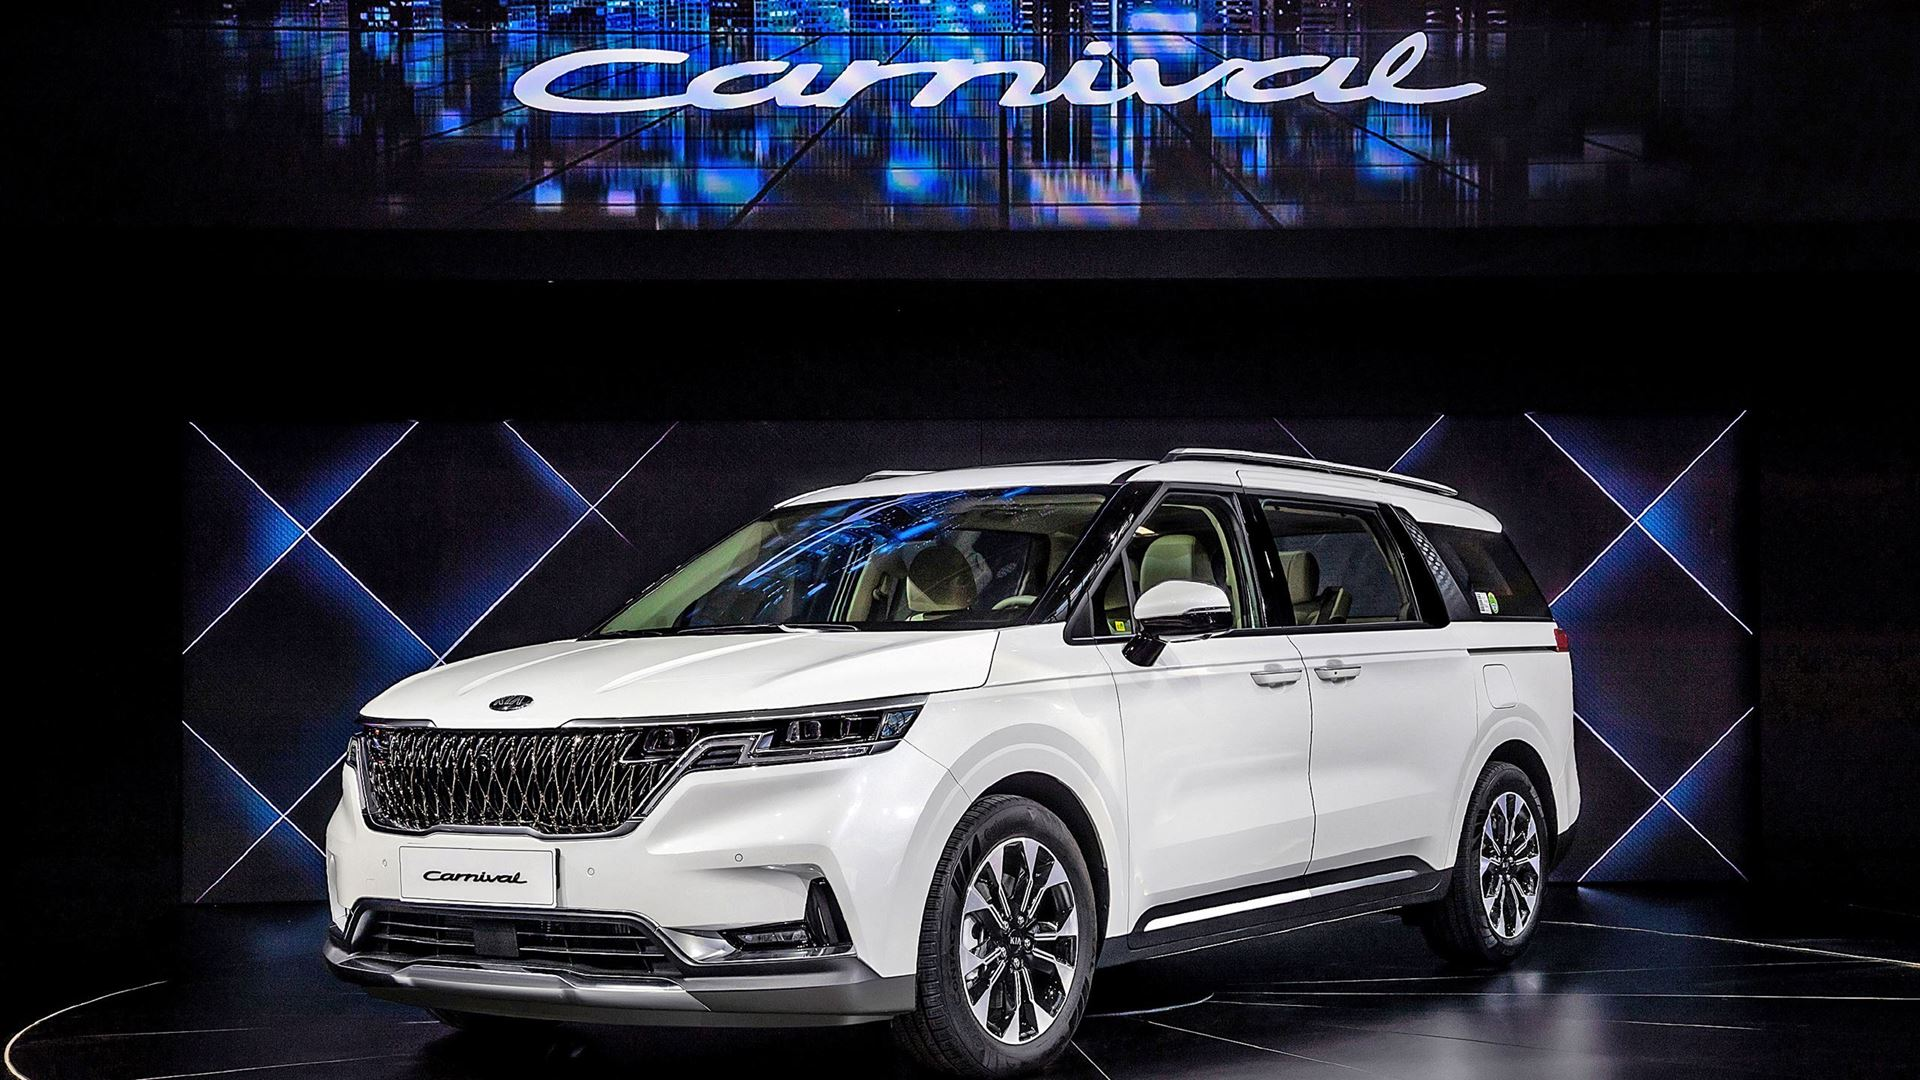 Kia Motors reveals new K5 and Carnival at Auto China 2020 - Image 5